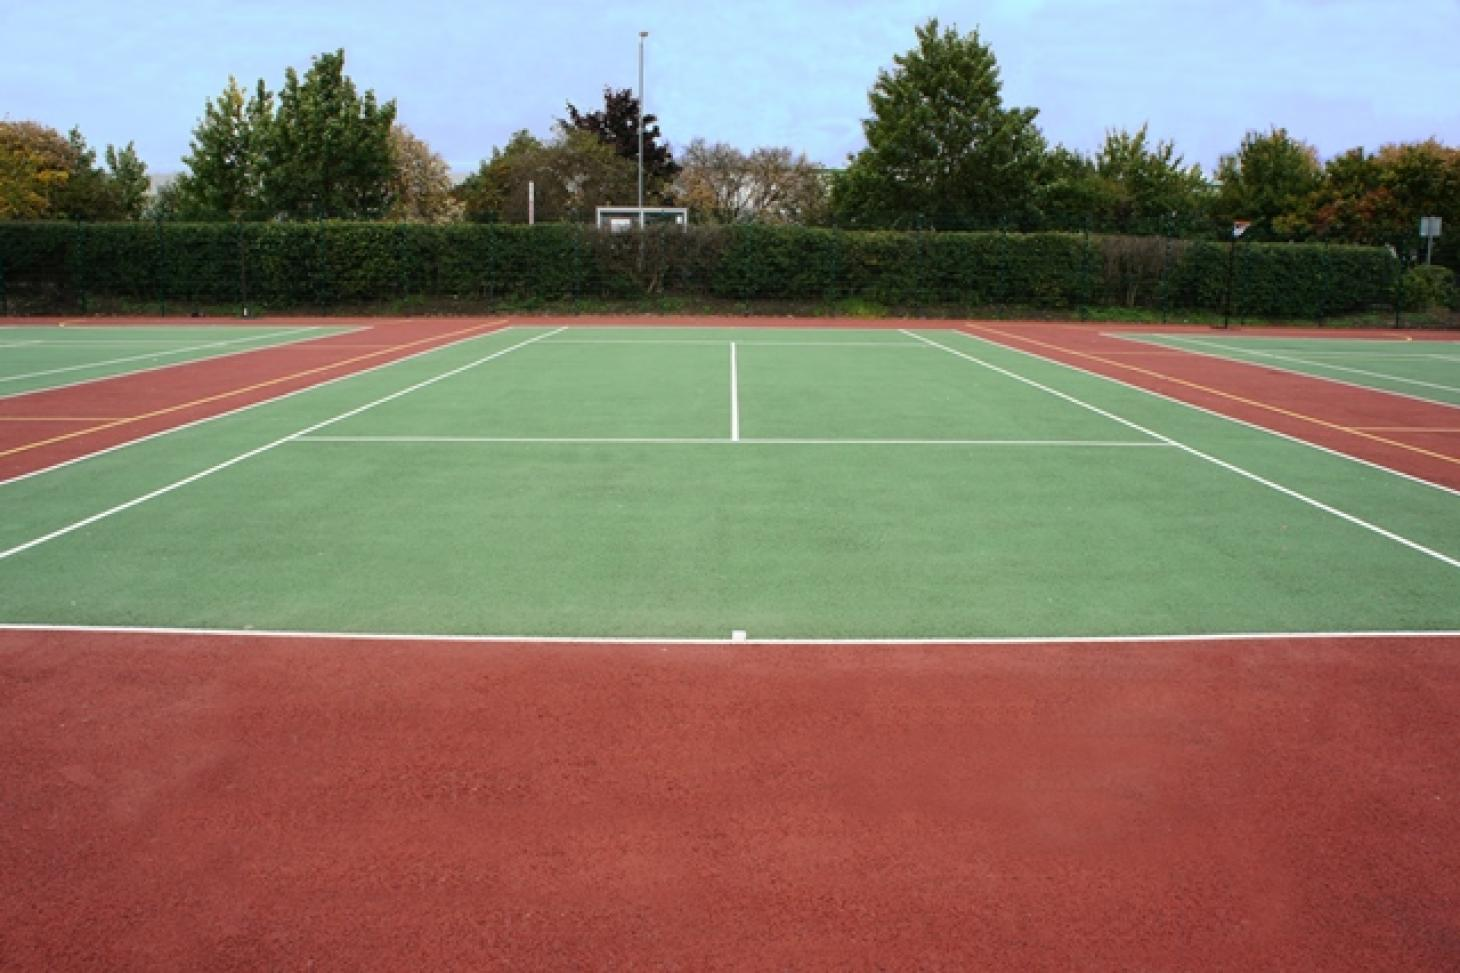 Lealands High School Outdoor | Hard (macadam) tennis court